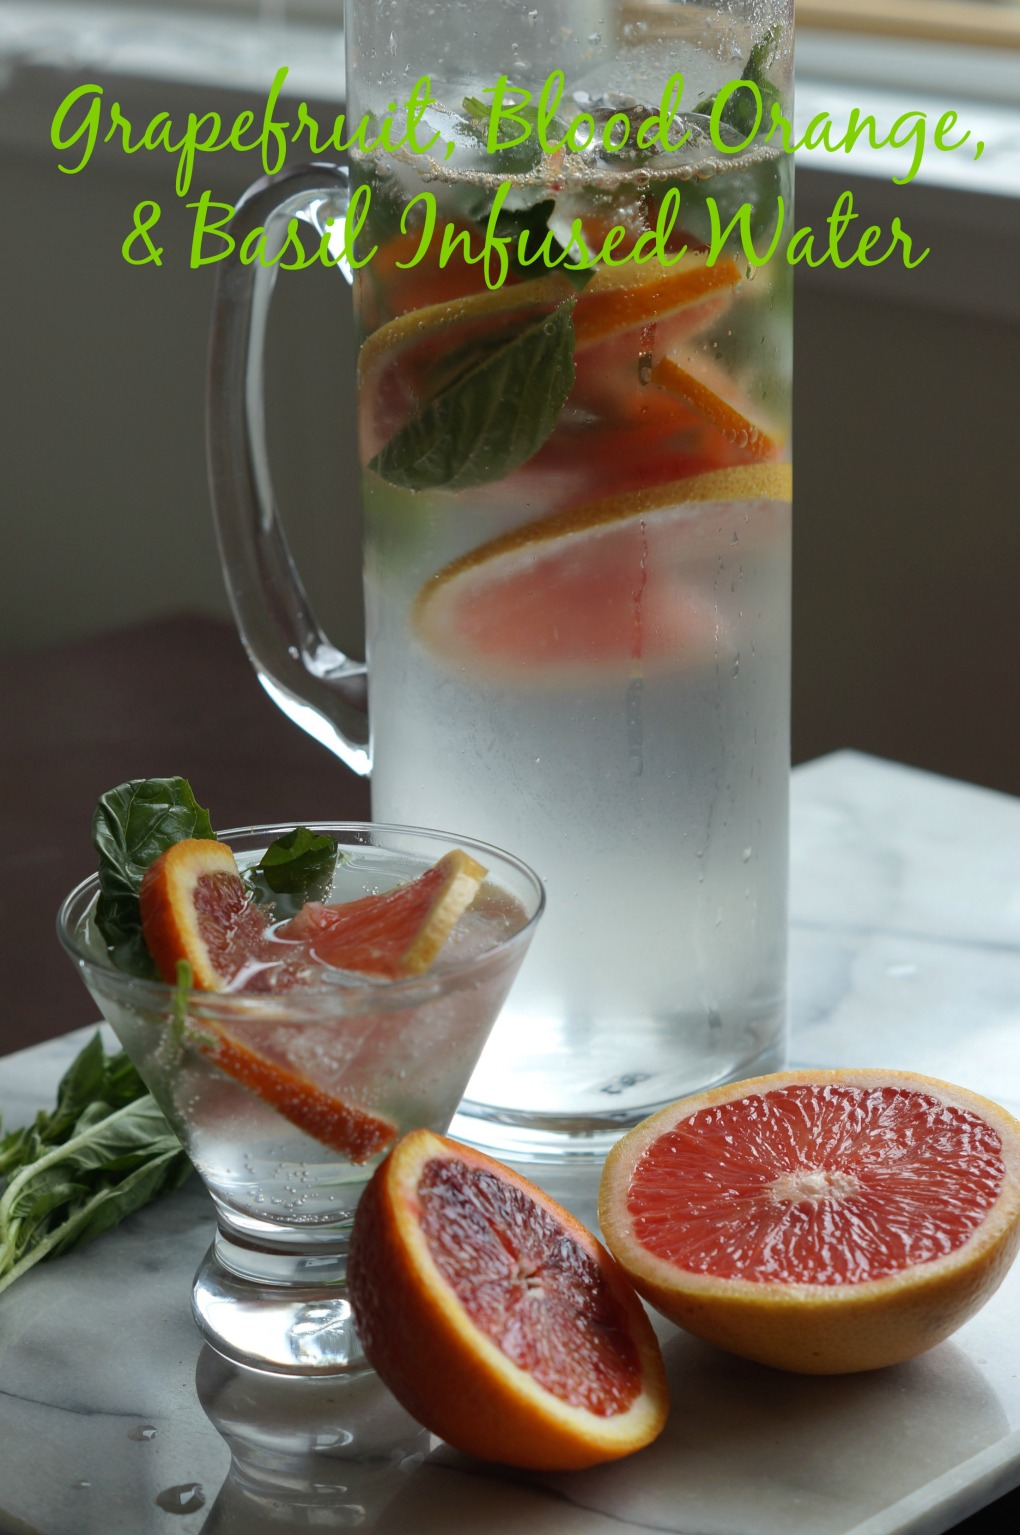 Grapefruit, Blood Orange, and Basil Infused Water